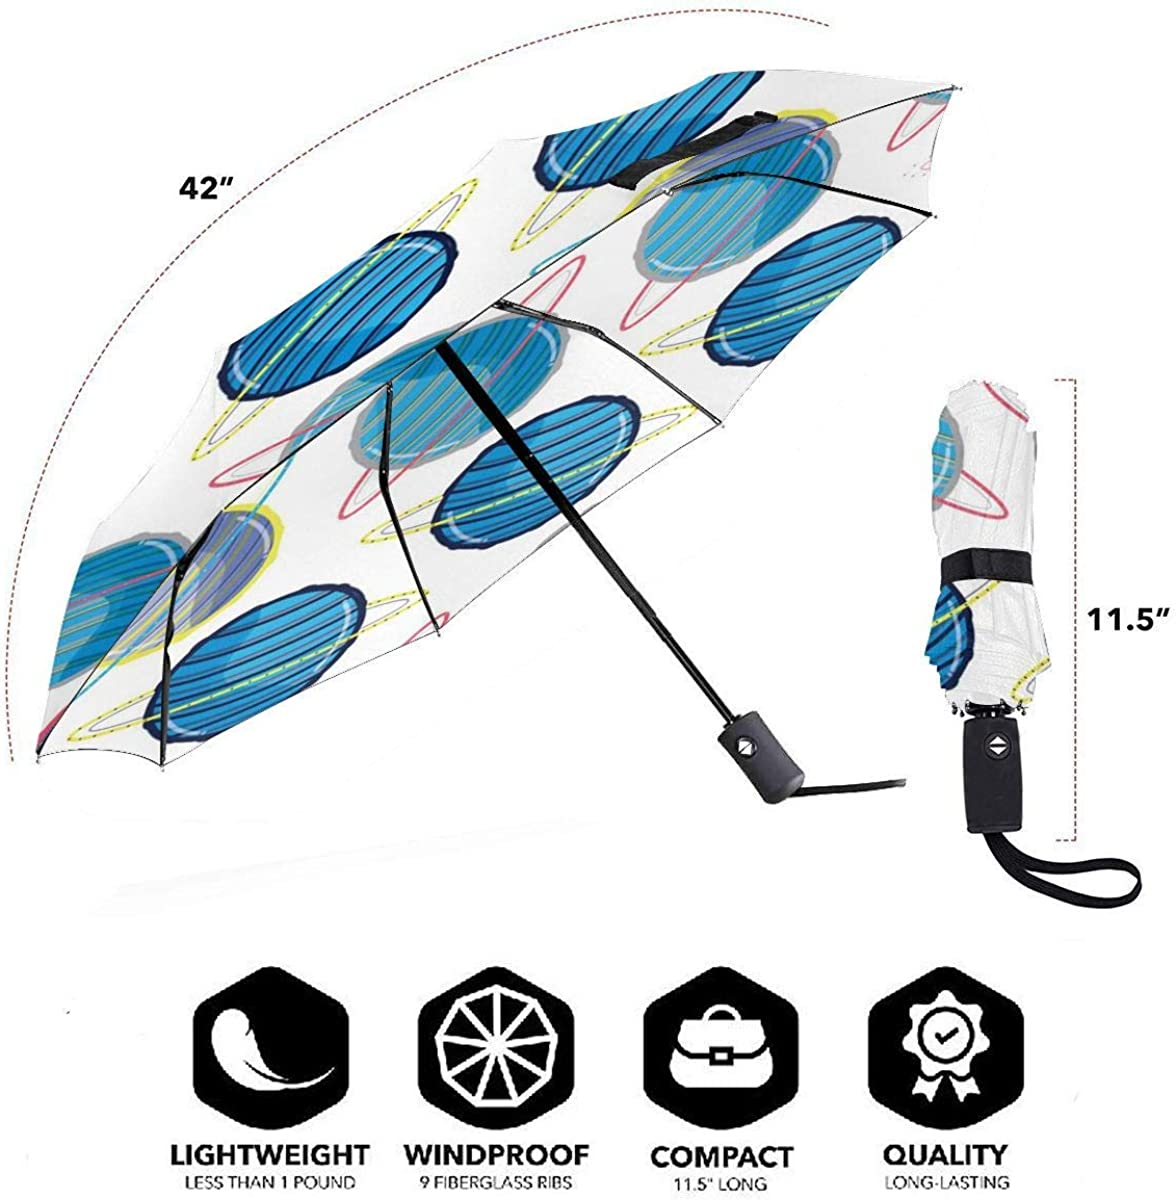 Uranus Planet In The Space Background Compact Travel Umbrella Windproof Reinforced Canopy 8 Ribs Umbrella Auto Open And Close Button Personalized